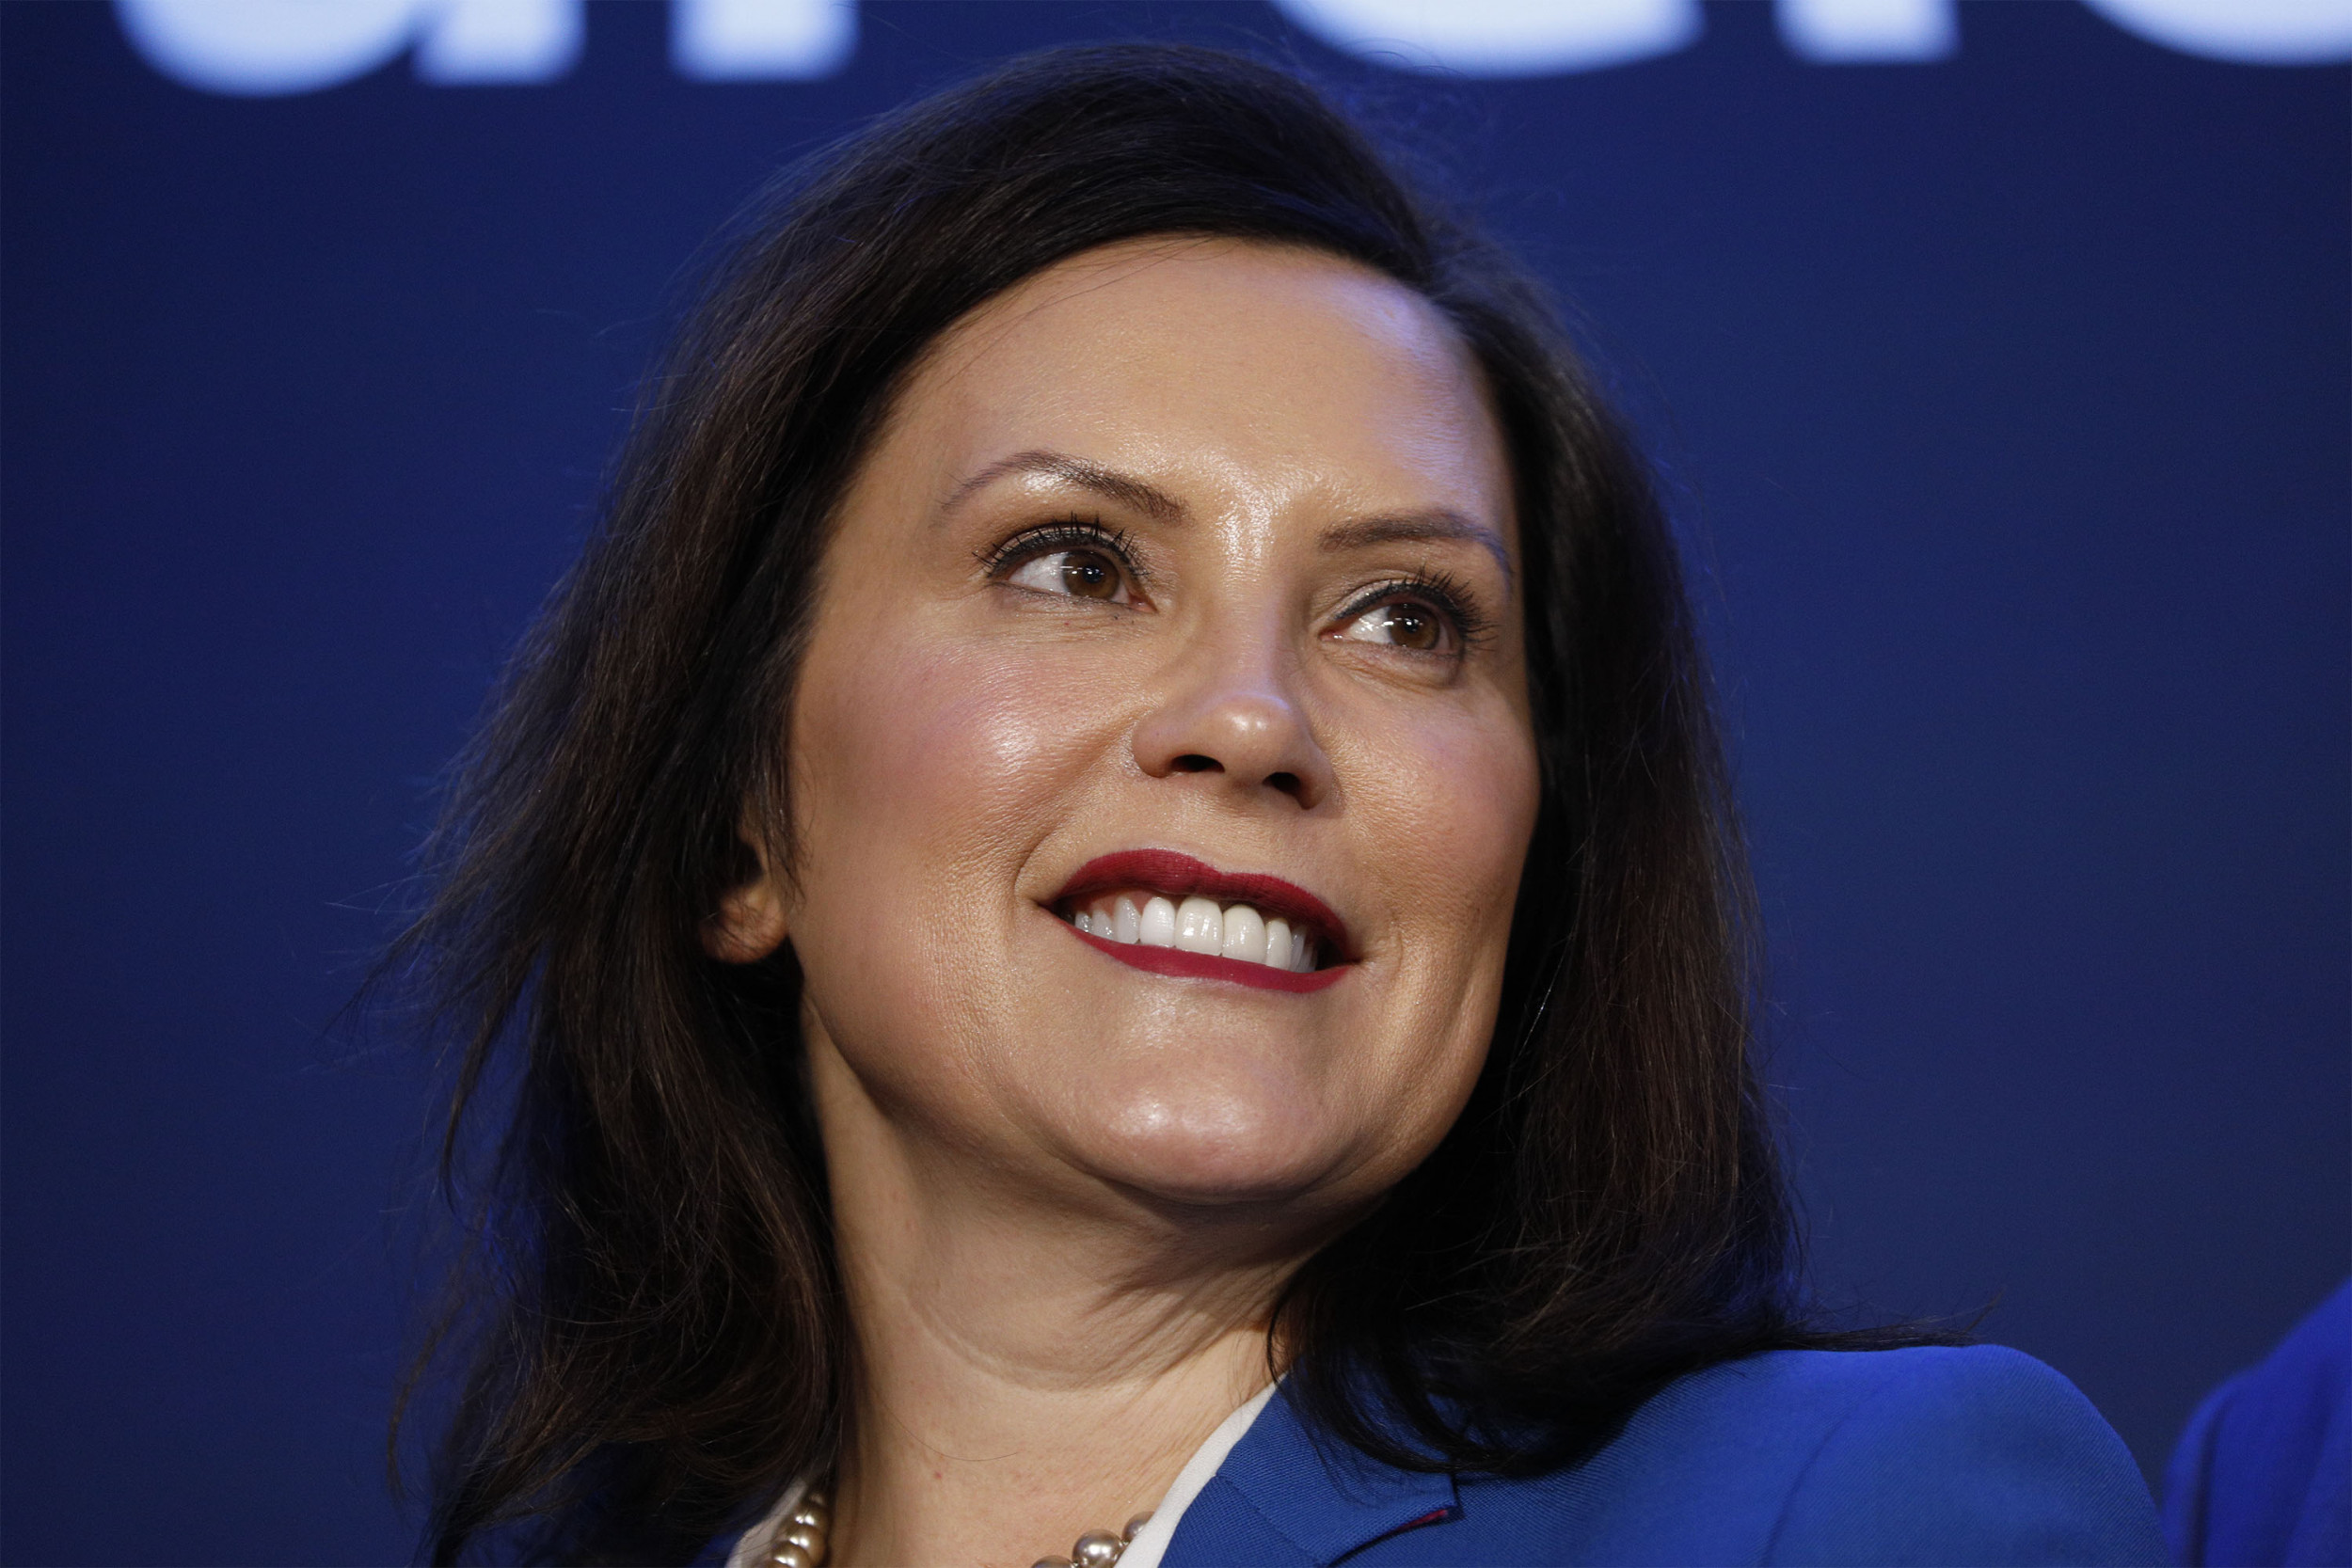 Michigan Gov. Gretchen Whitmer Is Being Sued Over Stay-at-Home Order